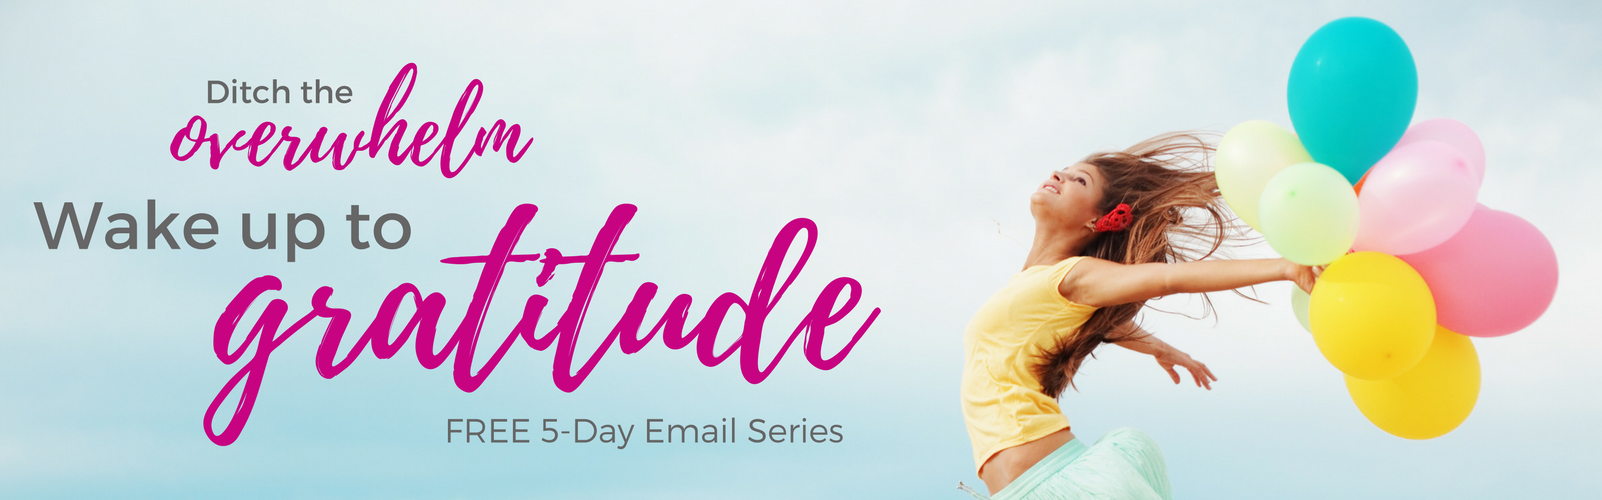 Wake up to Gratitude - Free 5-Day Email Series - Inspire thankfulness and develop an attitude of gratitude.